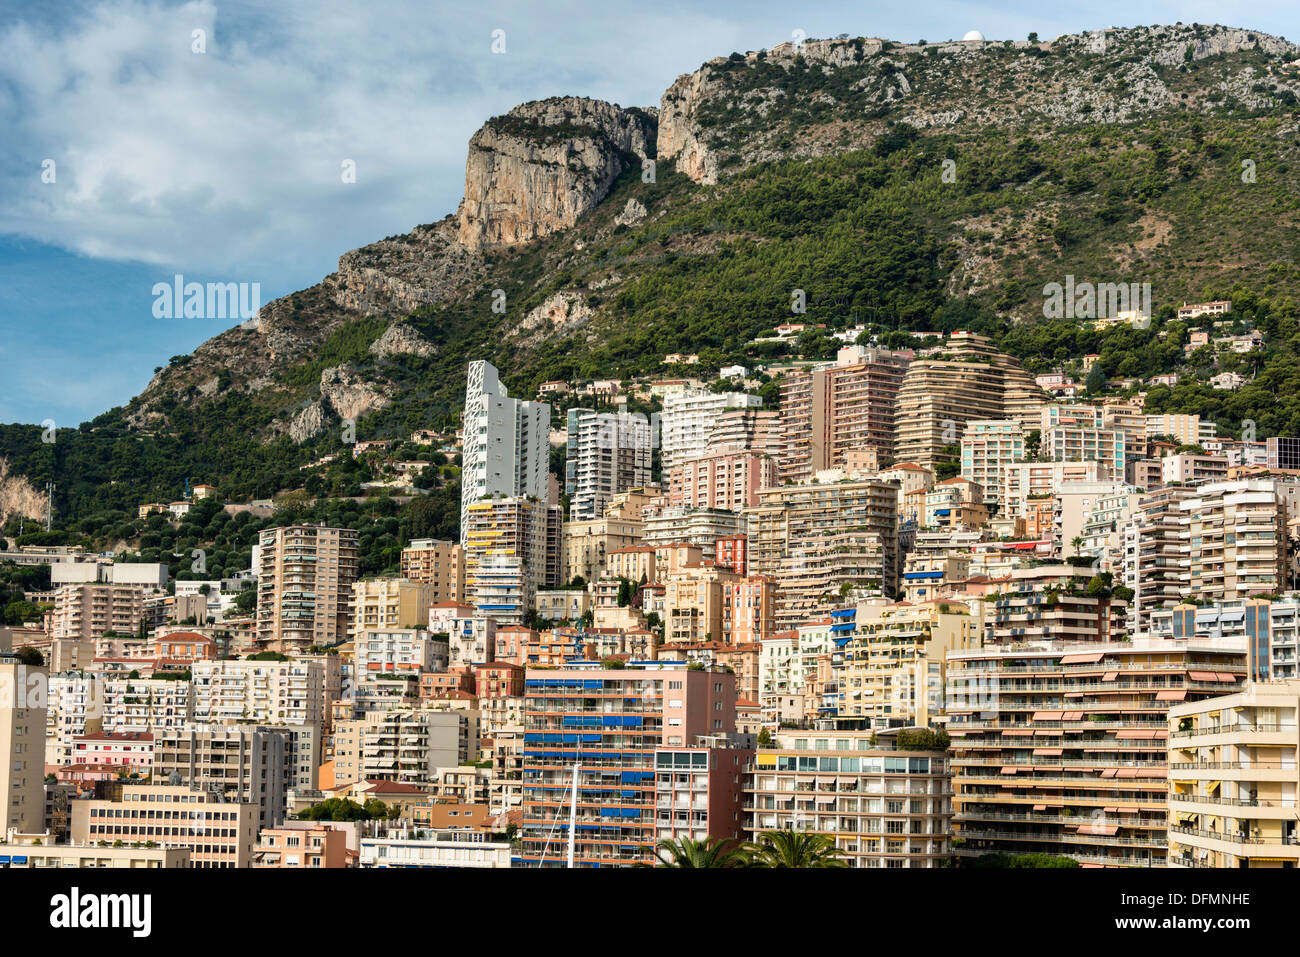 View westward over Fontvieille from the Prince's Palace, Monaco - Stock Image